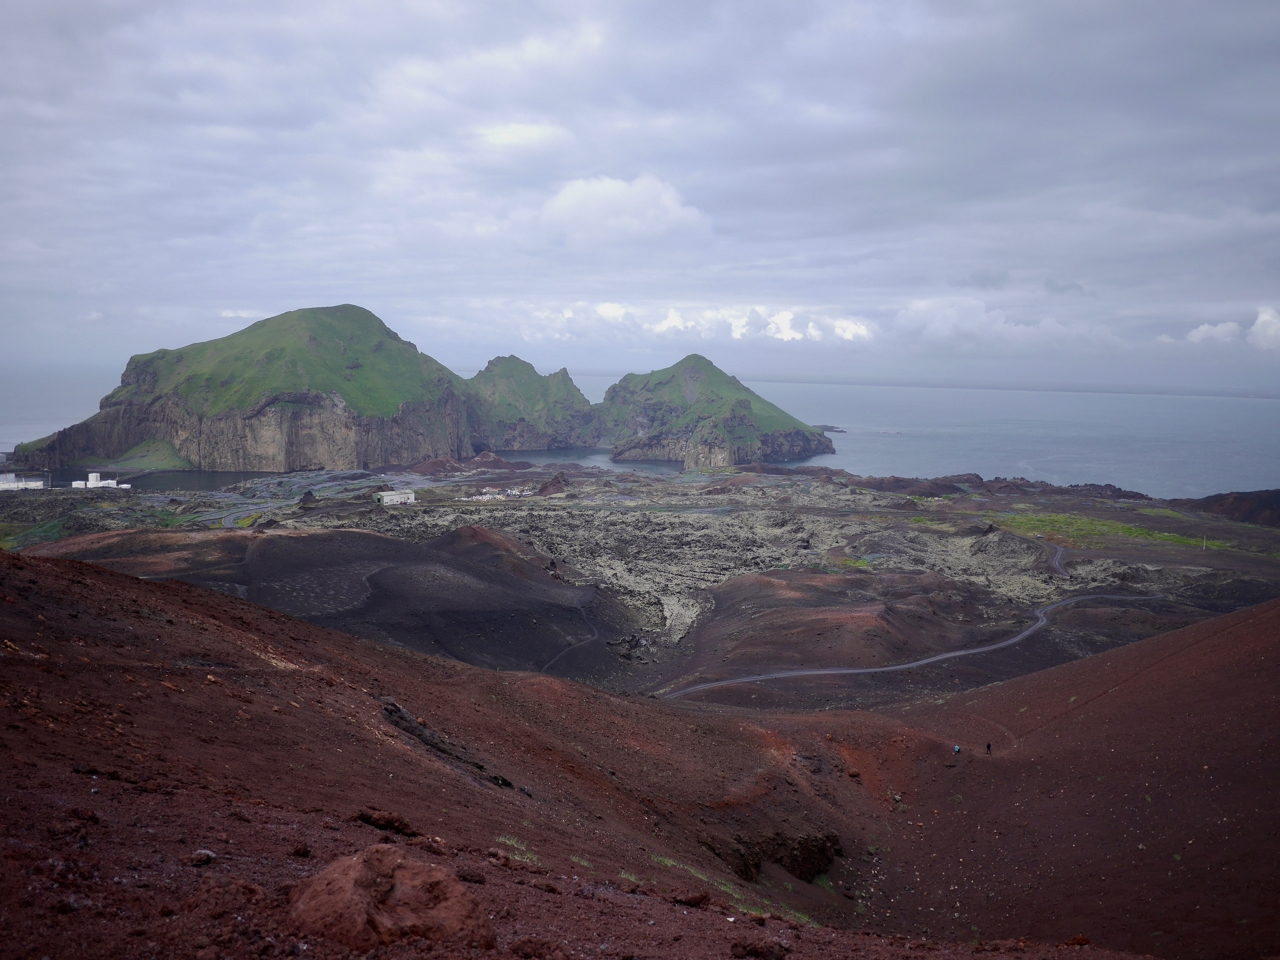 A lava flow viewed from its source volcanic cone, together with the small town it almost engulfed in 1973.